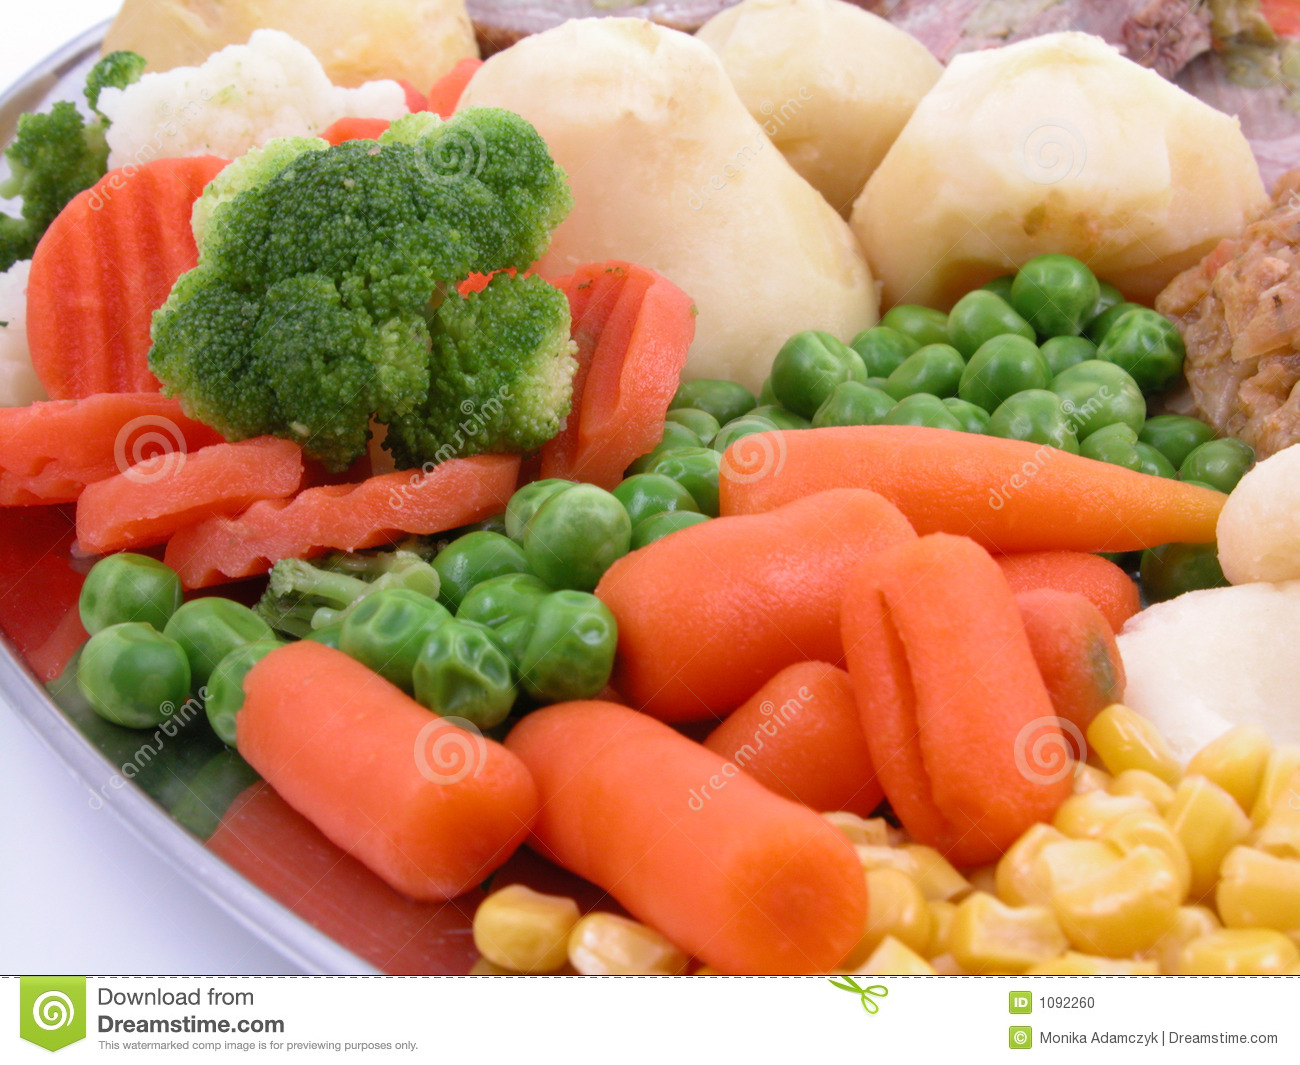 Cooked potatoes carrots sweet pea corn and broccoli on plate.